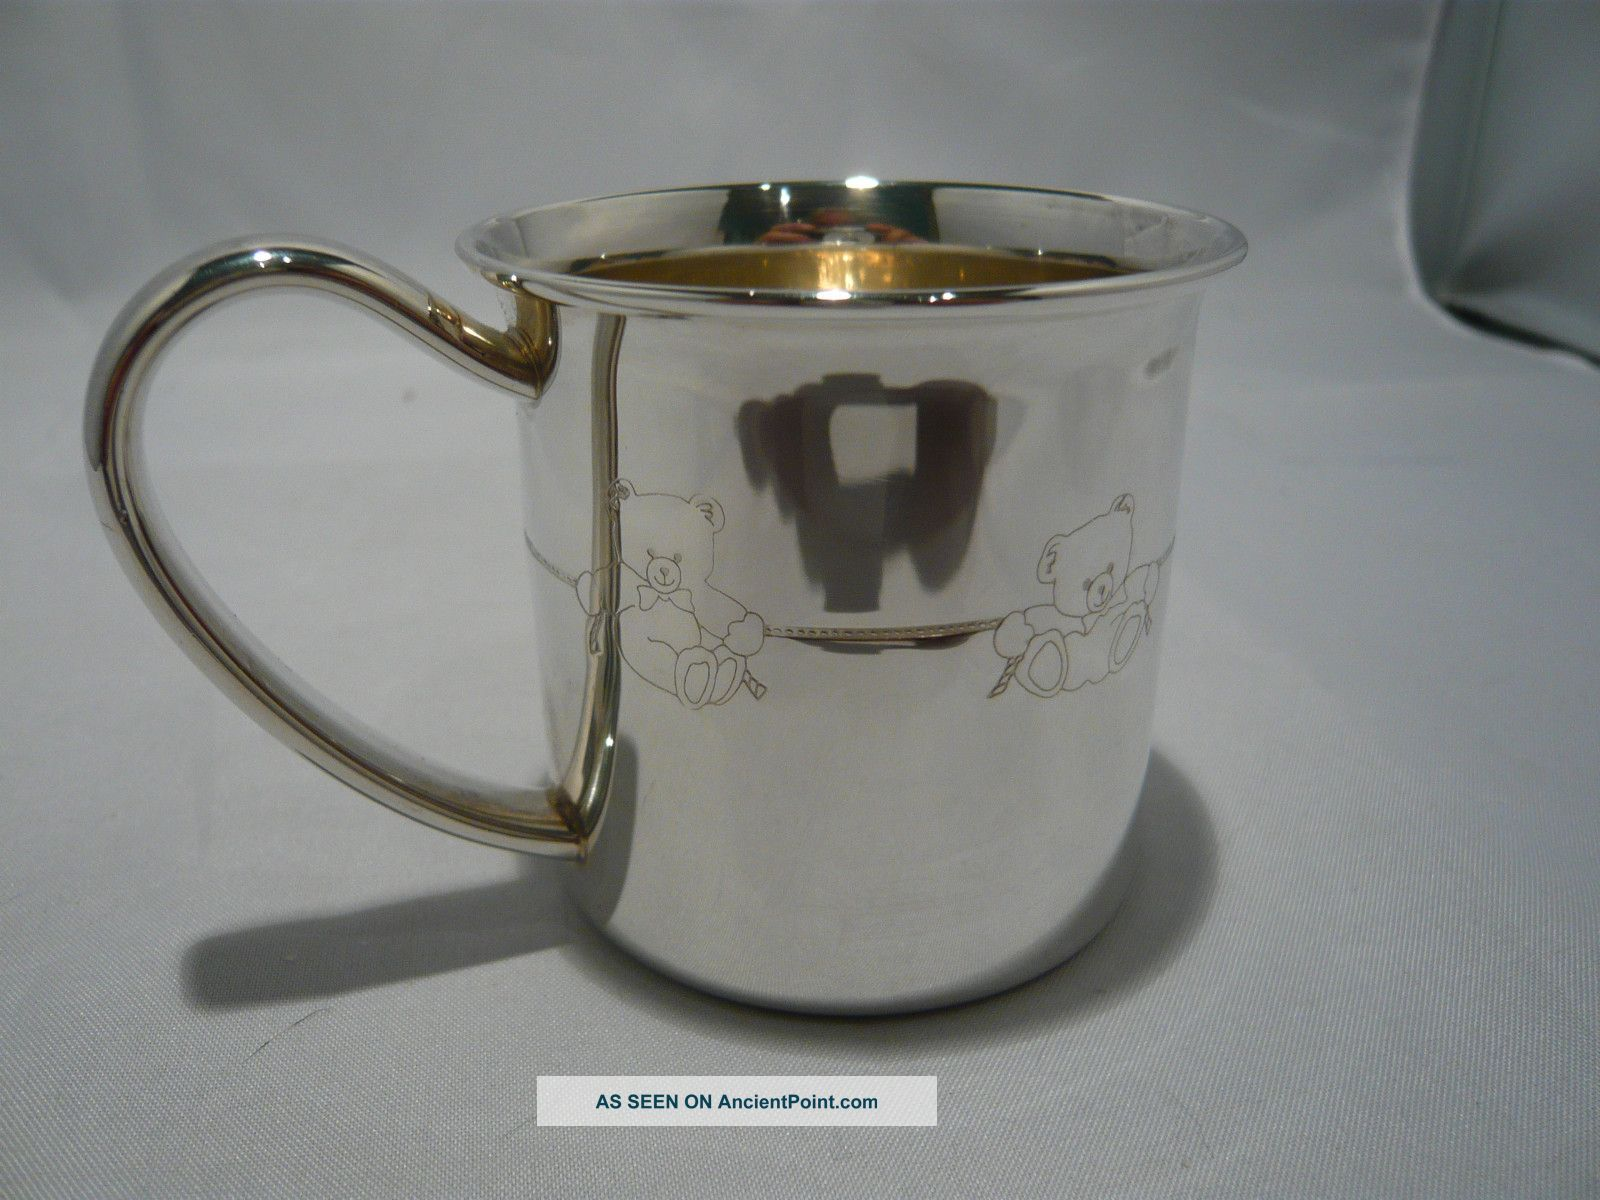 A Sweet Lunt Sterling Silver Childs Cup Engraved With Teddy Bears Around The Cup Cups & Goblets photo